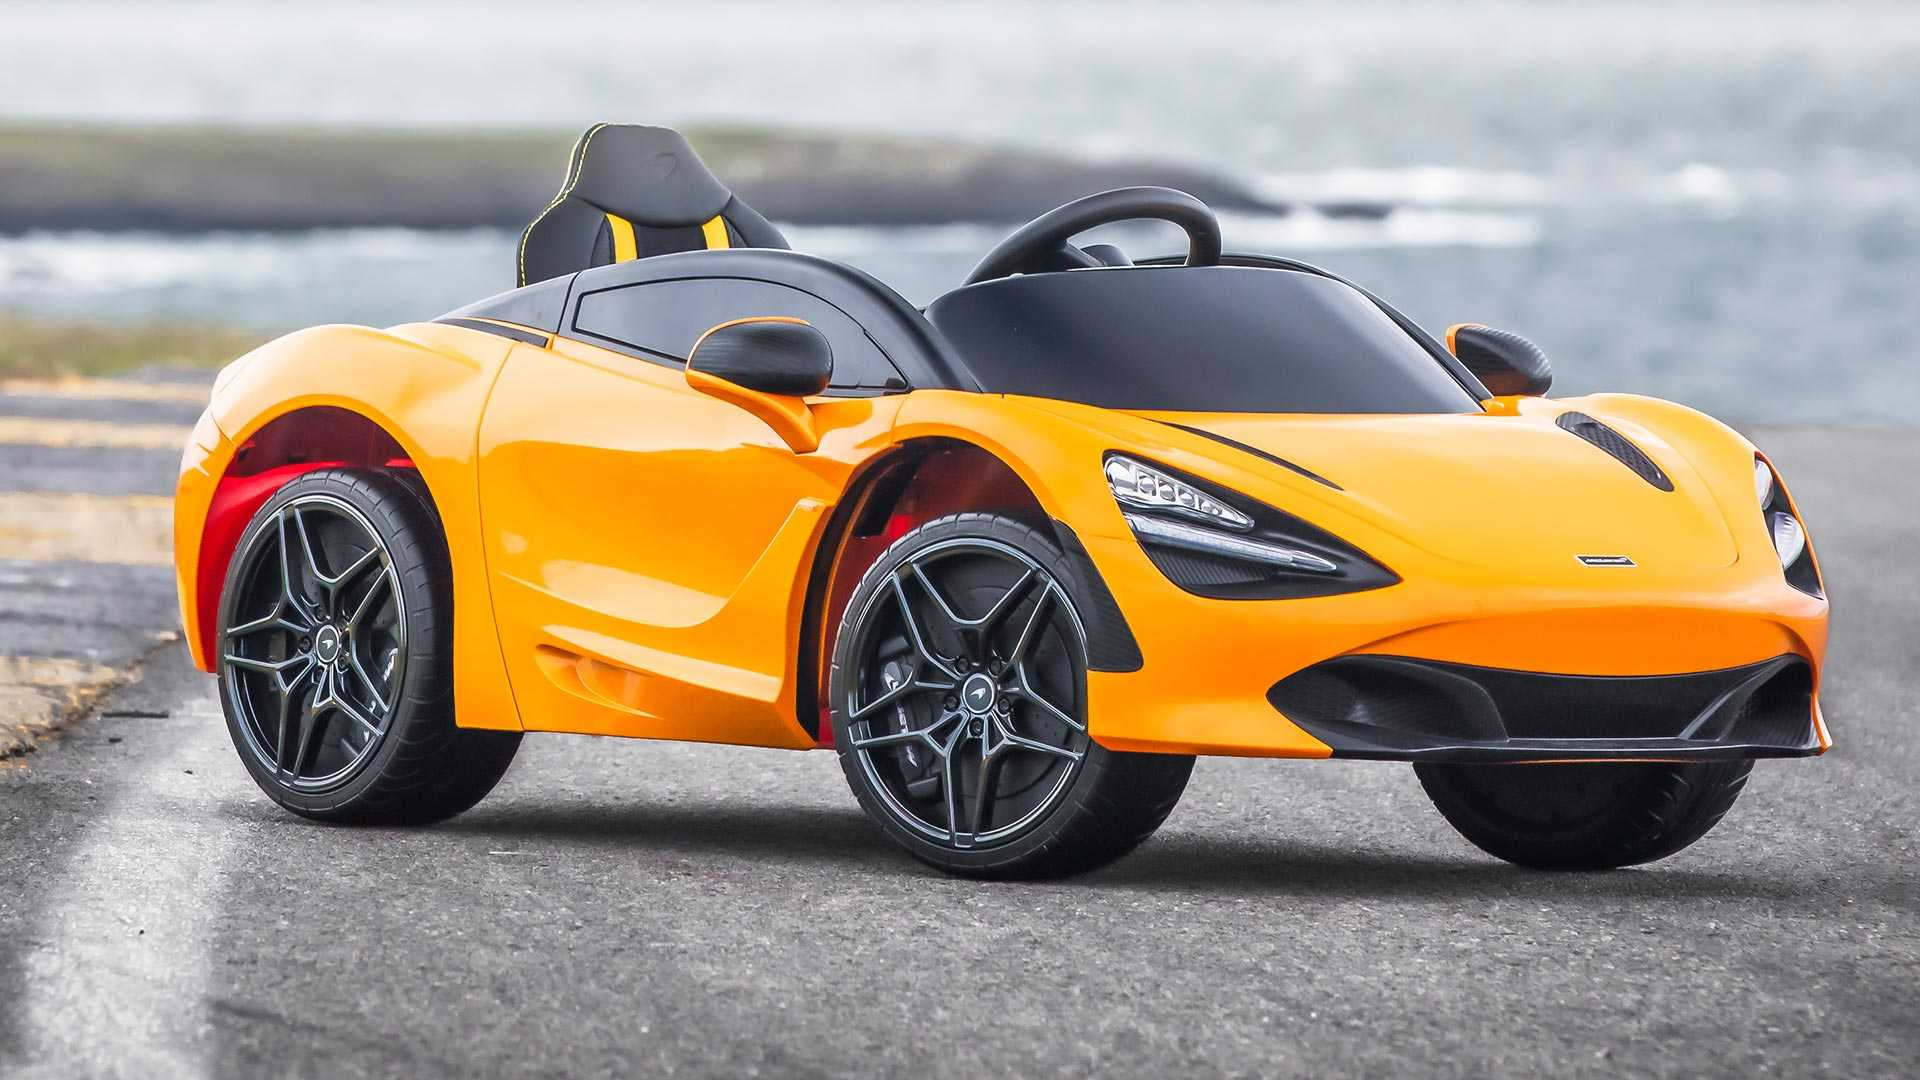 Toddler Car Dashboard Mclaren 720s Debuts New Autonomous Electric Variant For Kids